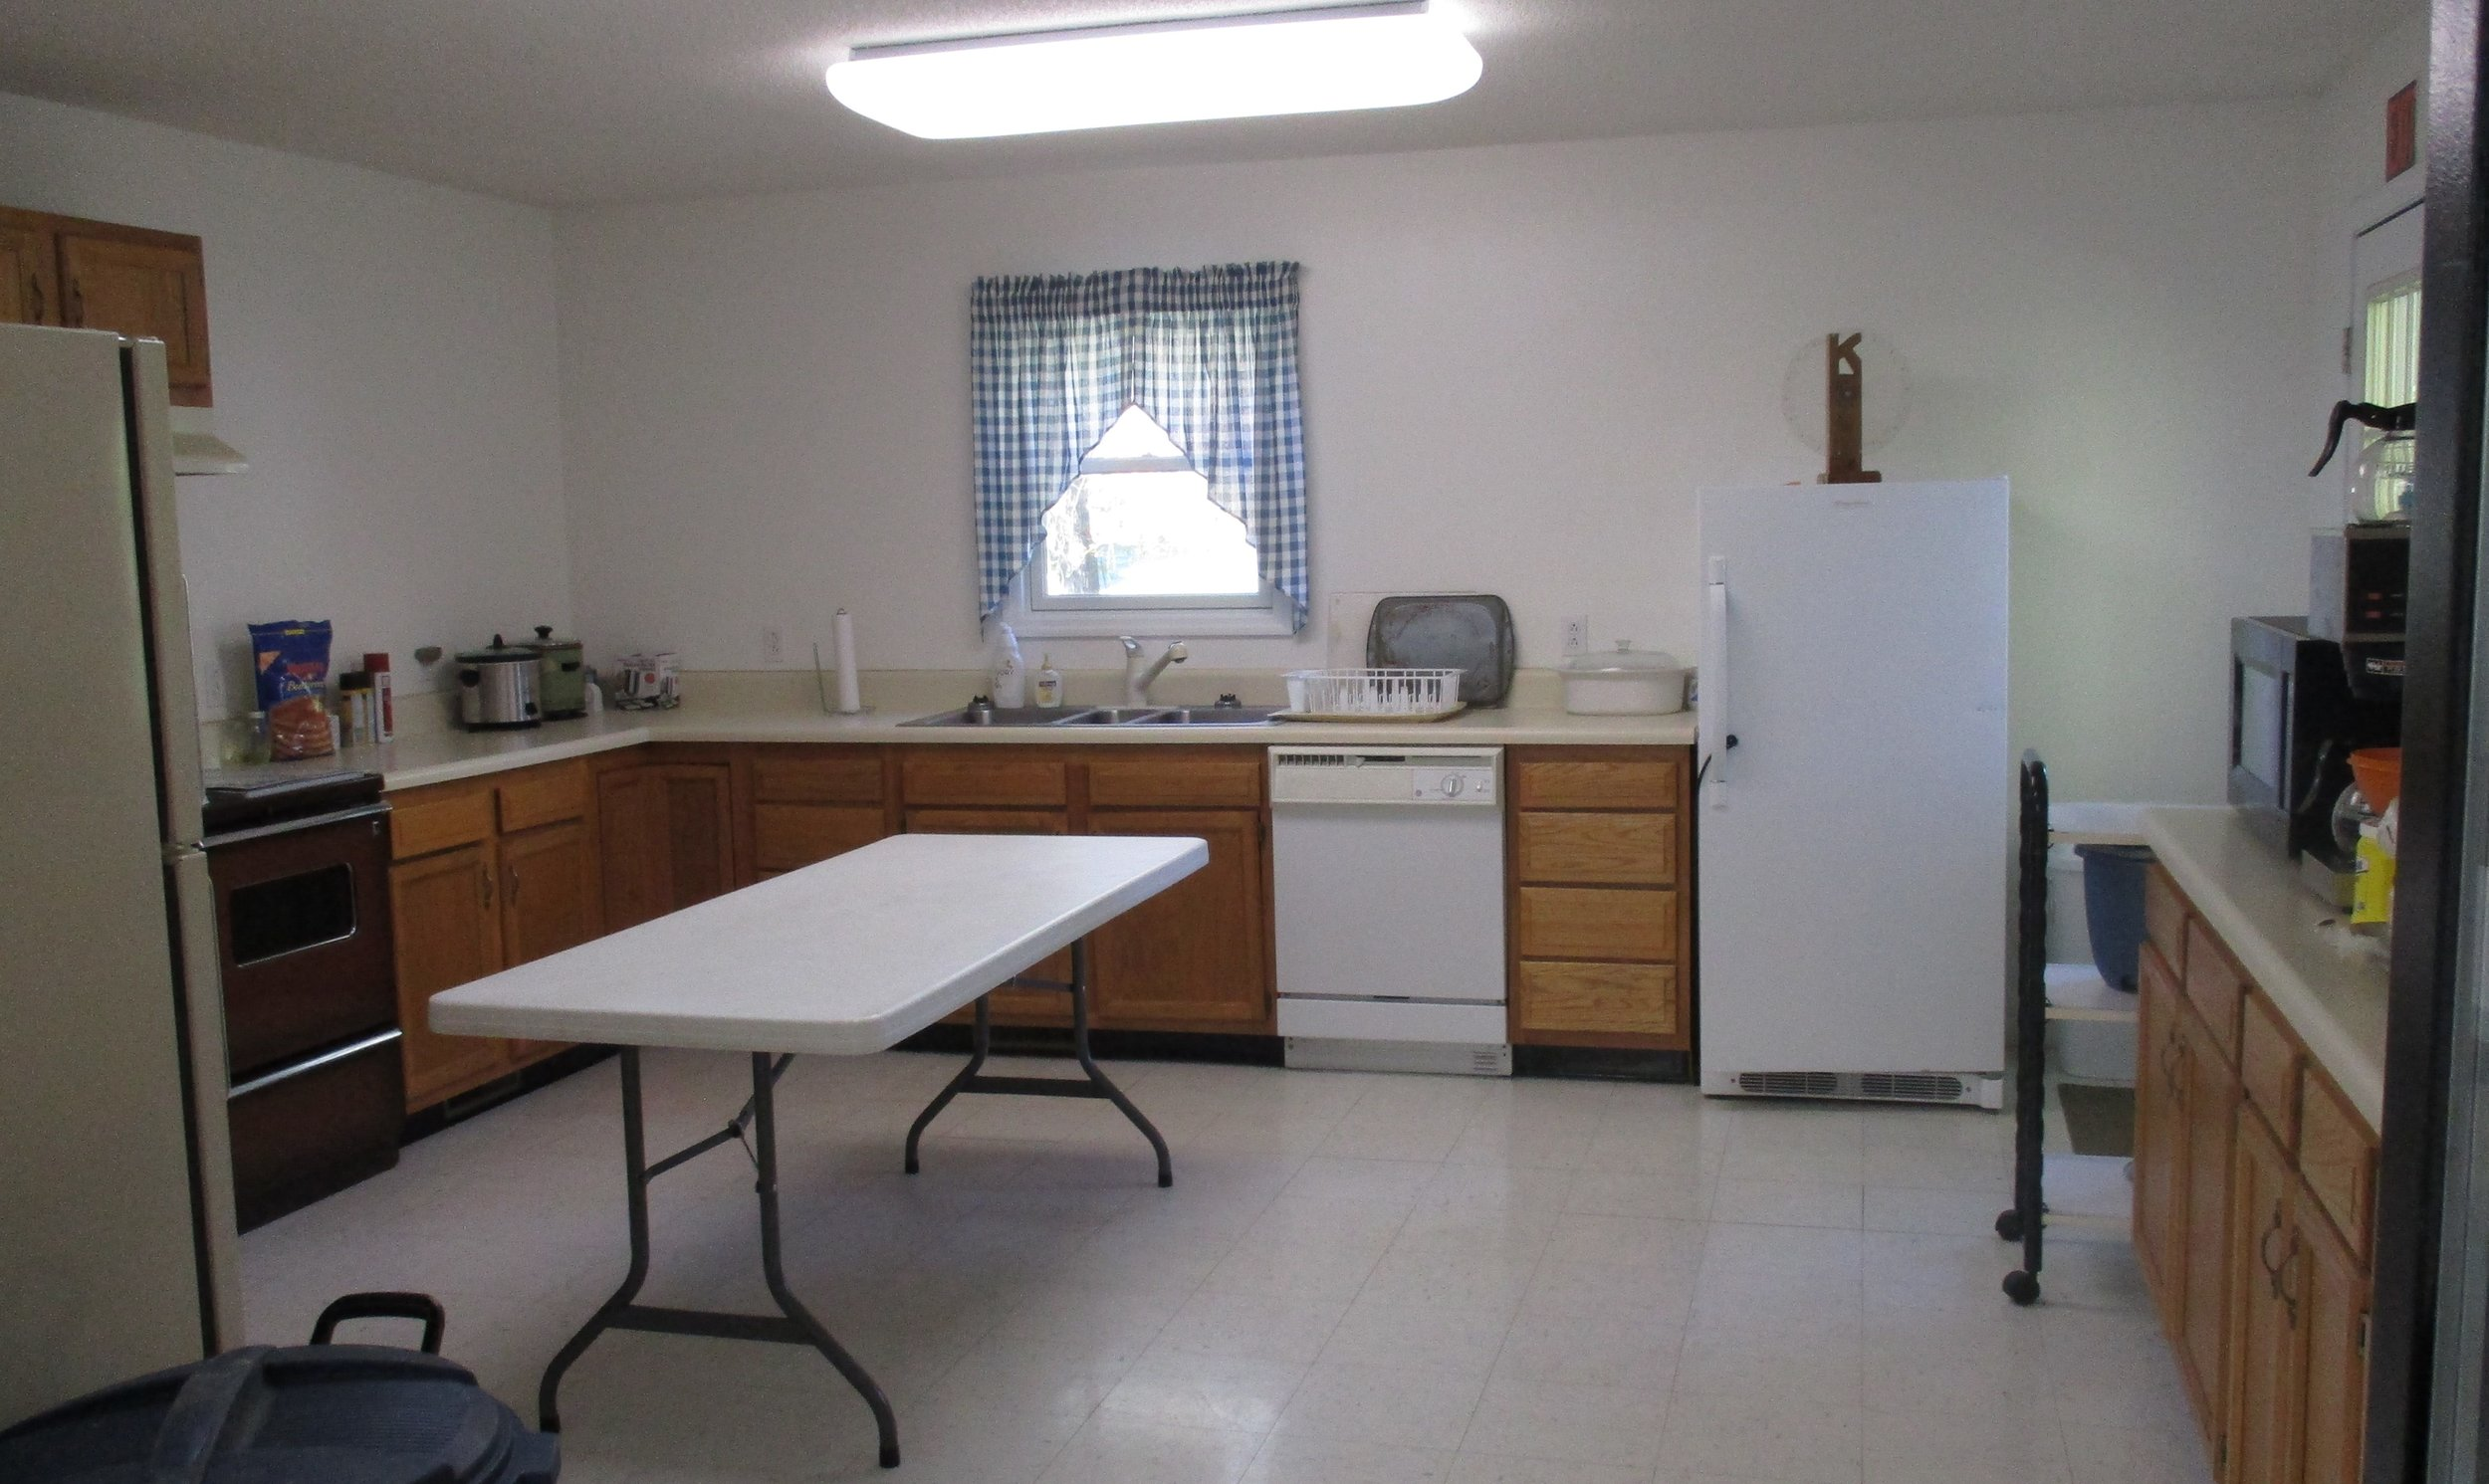 Kiwanis Bldg Kitchen.jpg